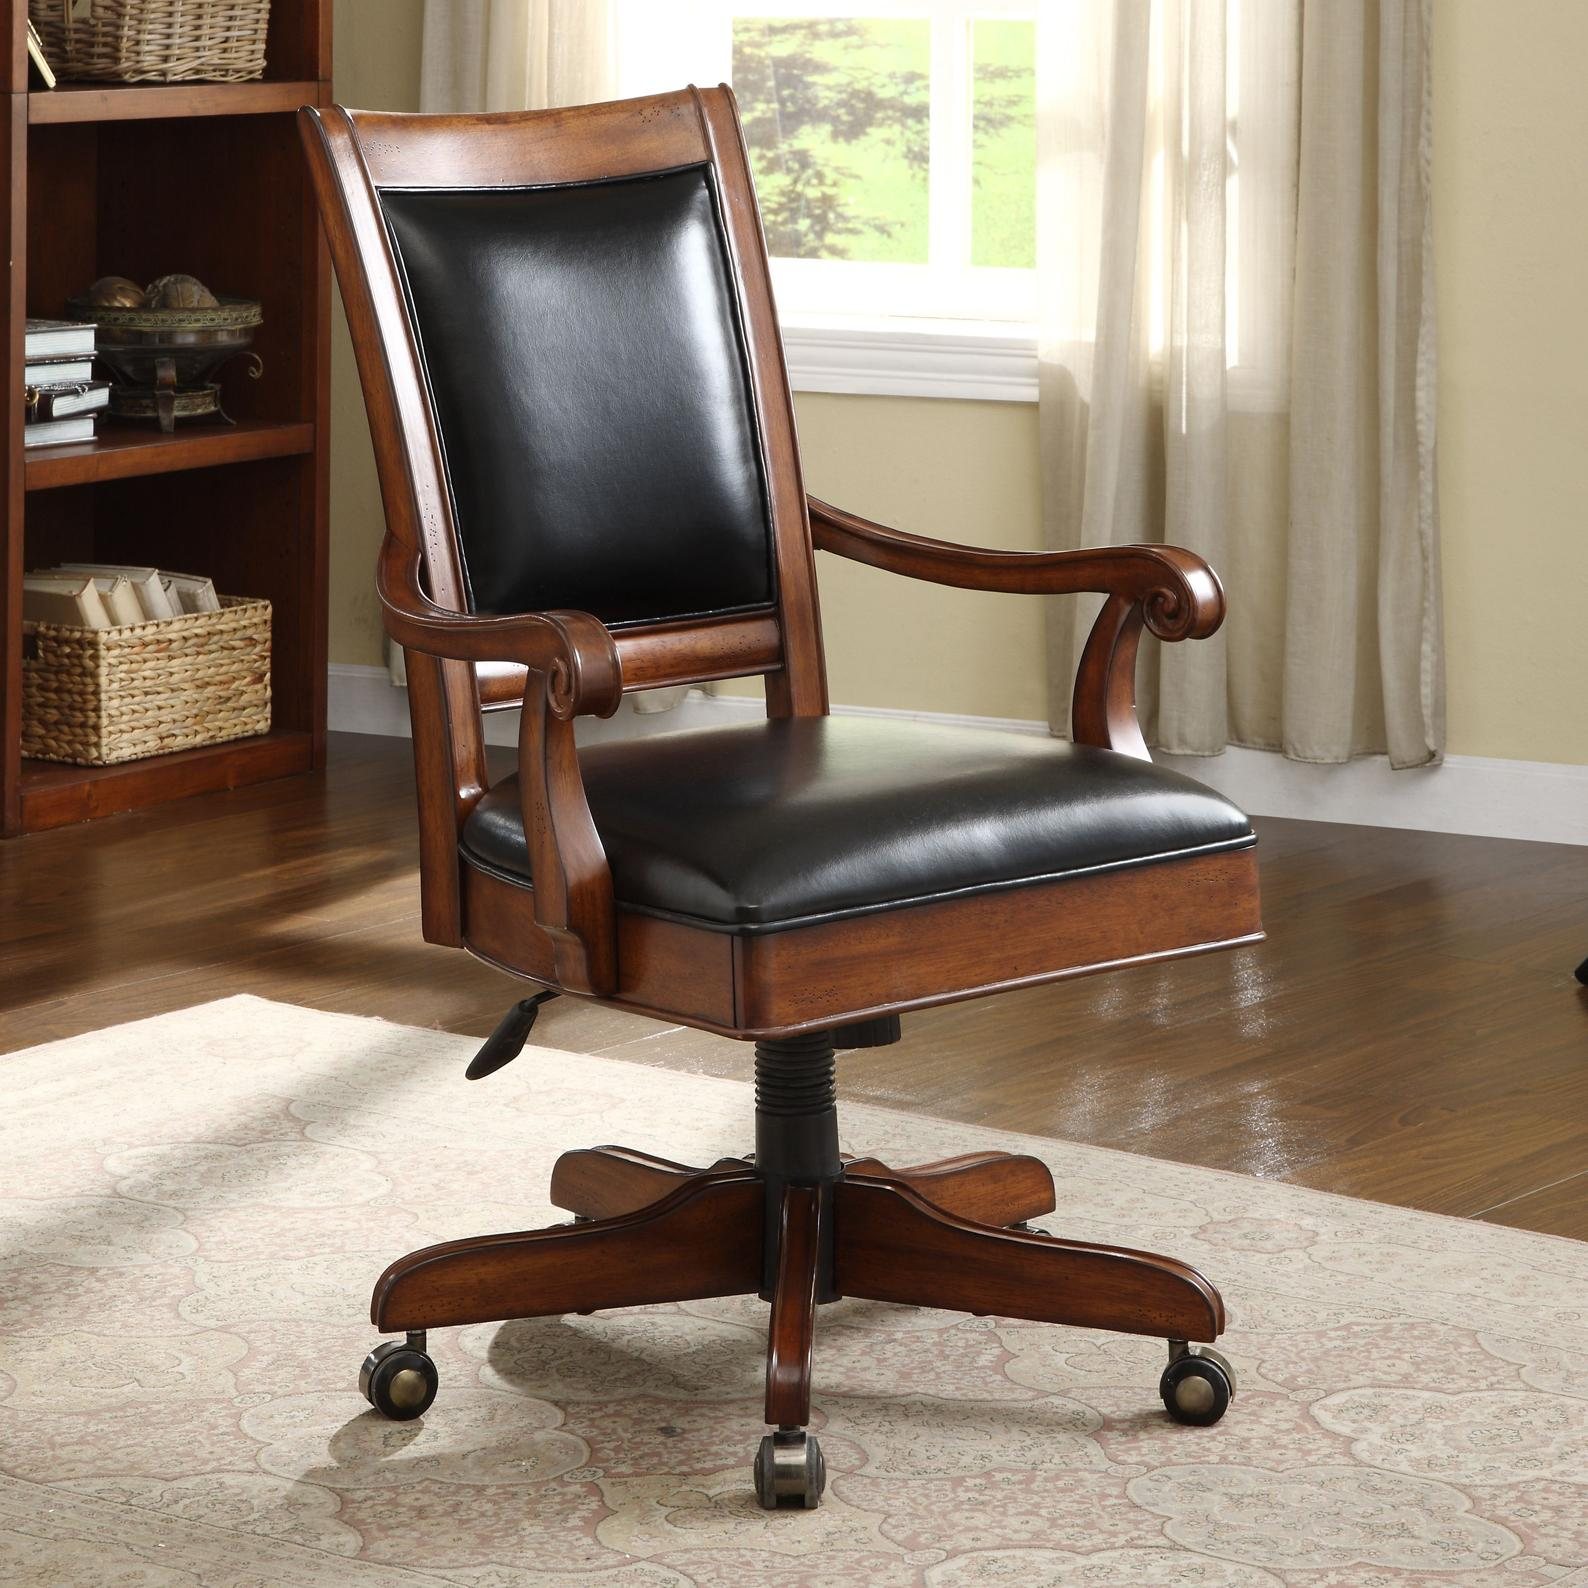 Caster Equipped Wooden Desk Chair With Leather Covered Seat By Riverside Furniture Wolf And